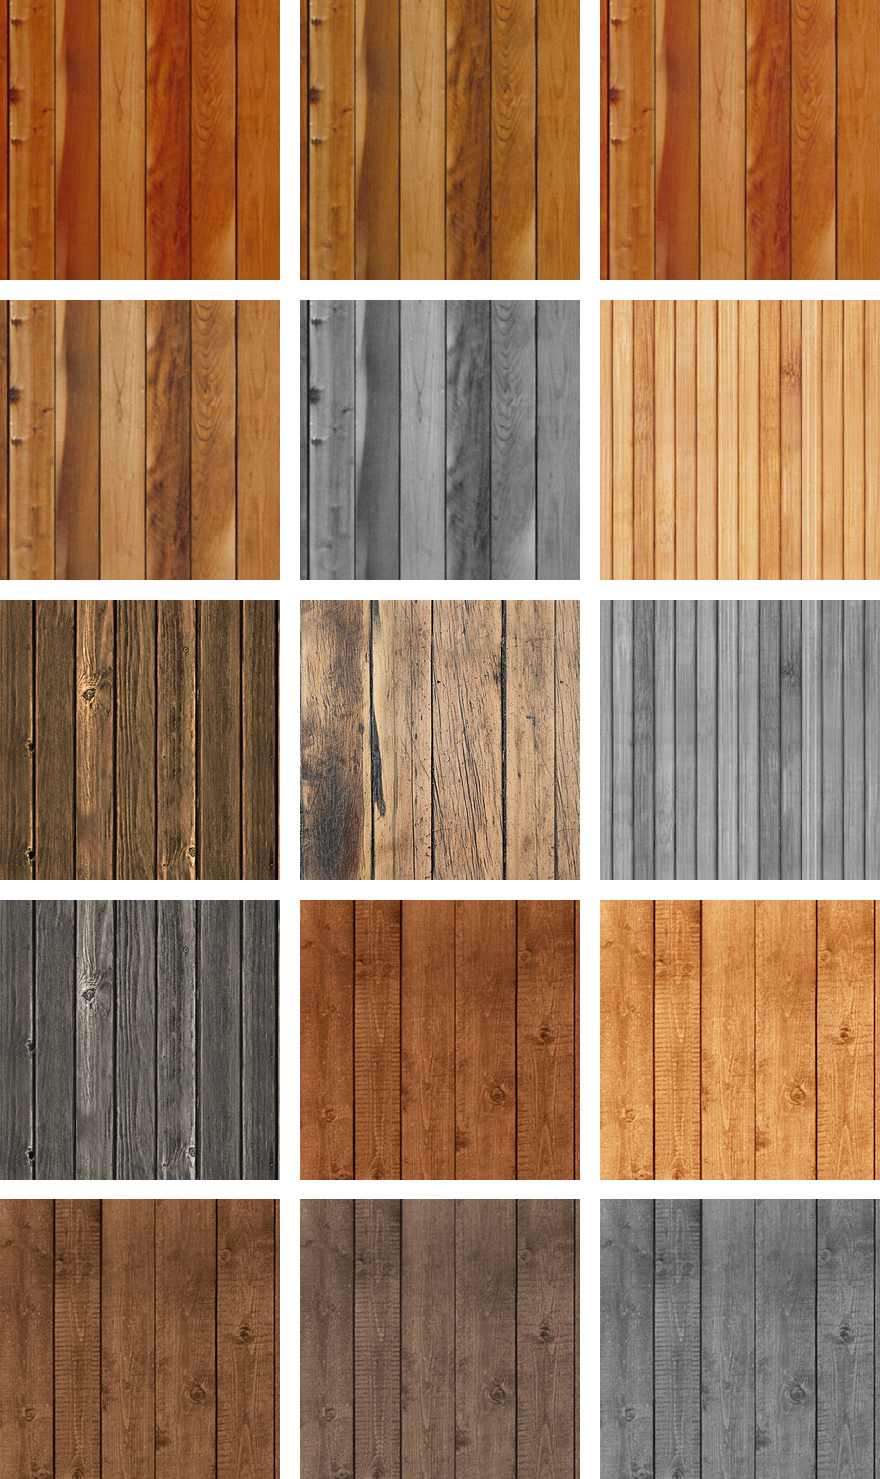 15 seamless photoshop wood patterns by bestpsdfreebies on